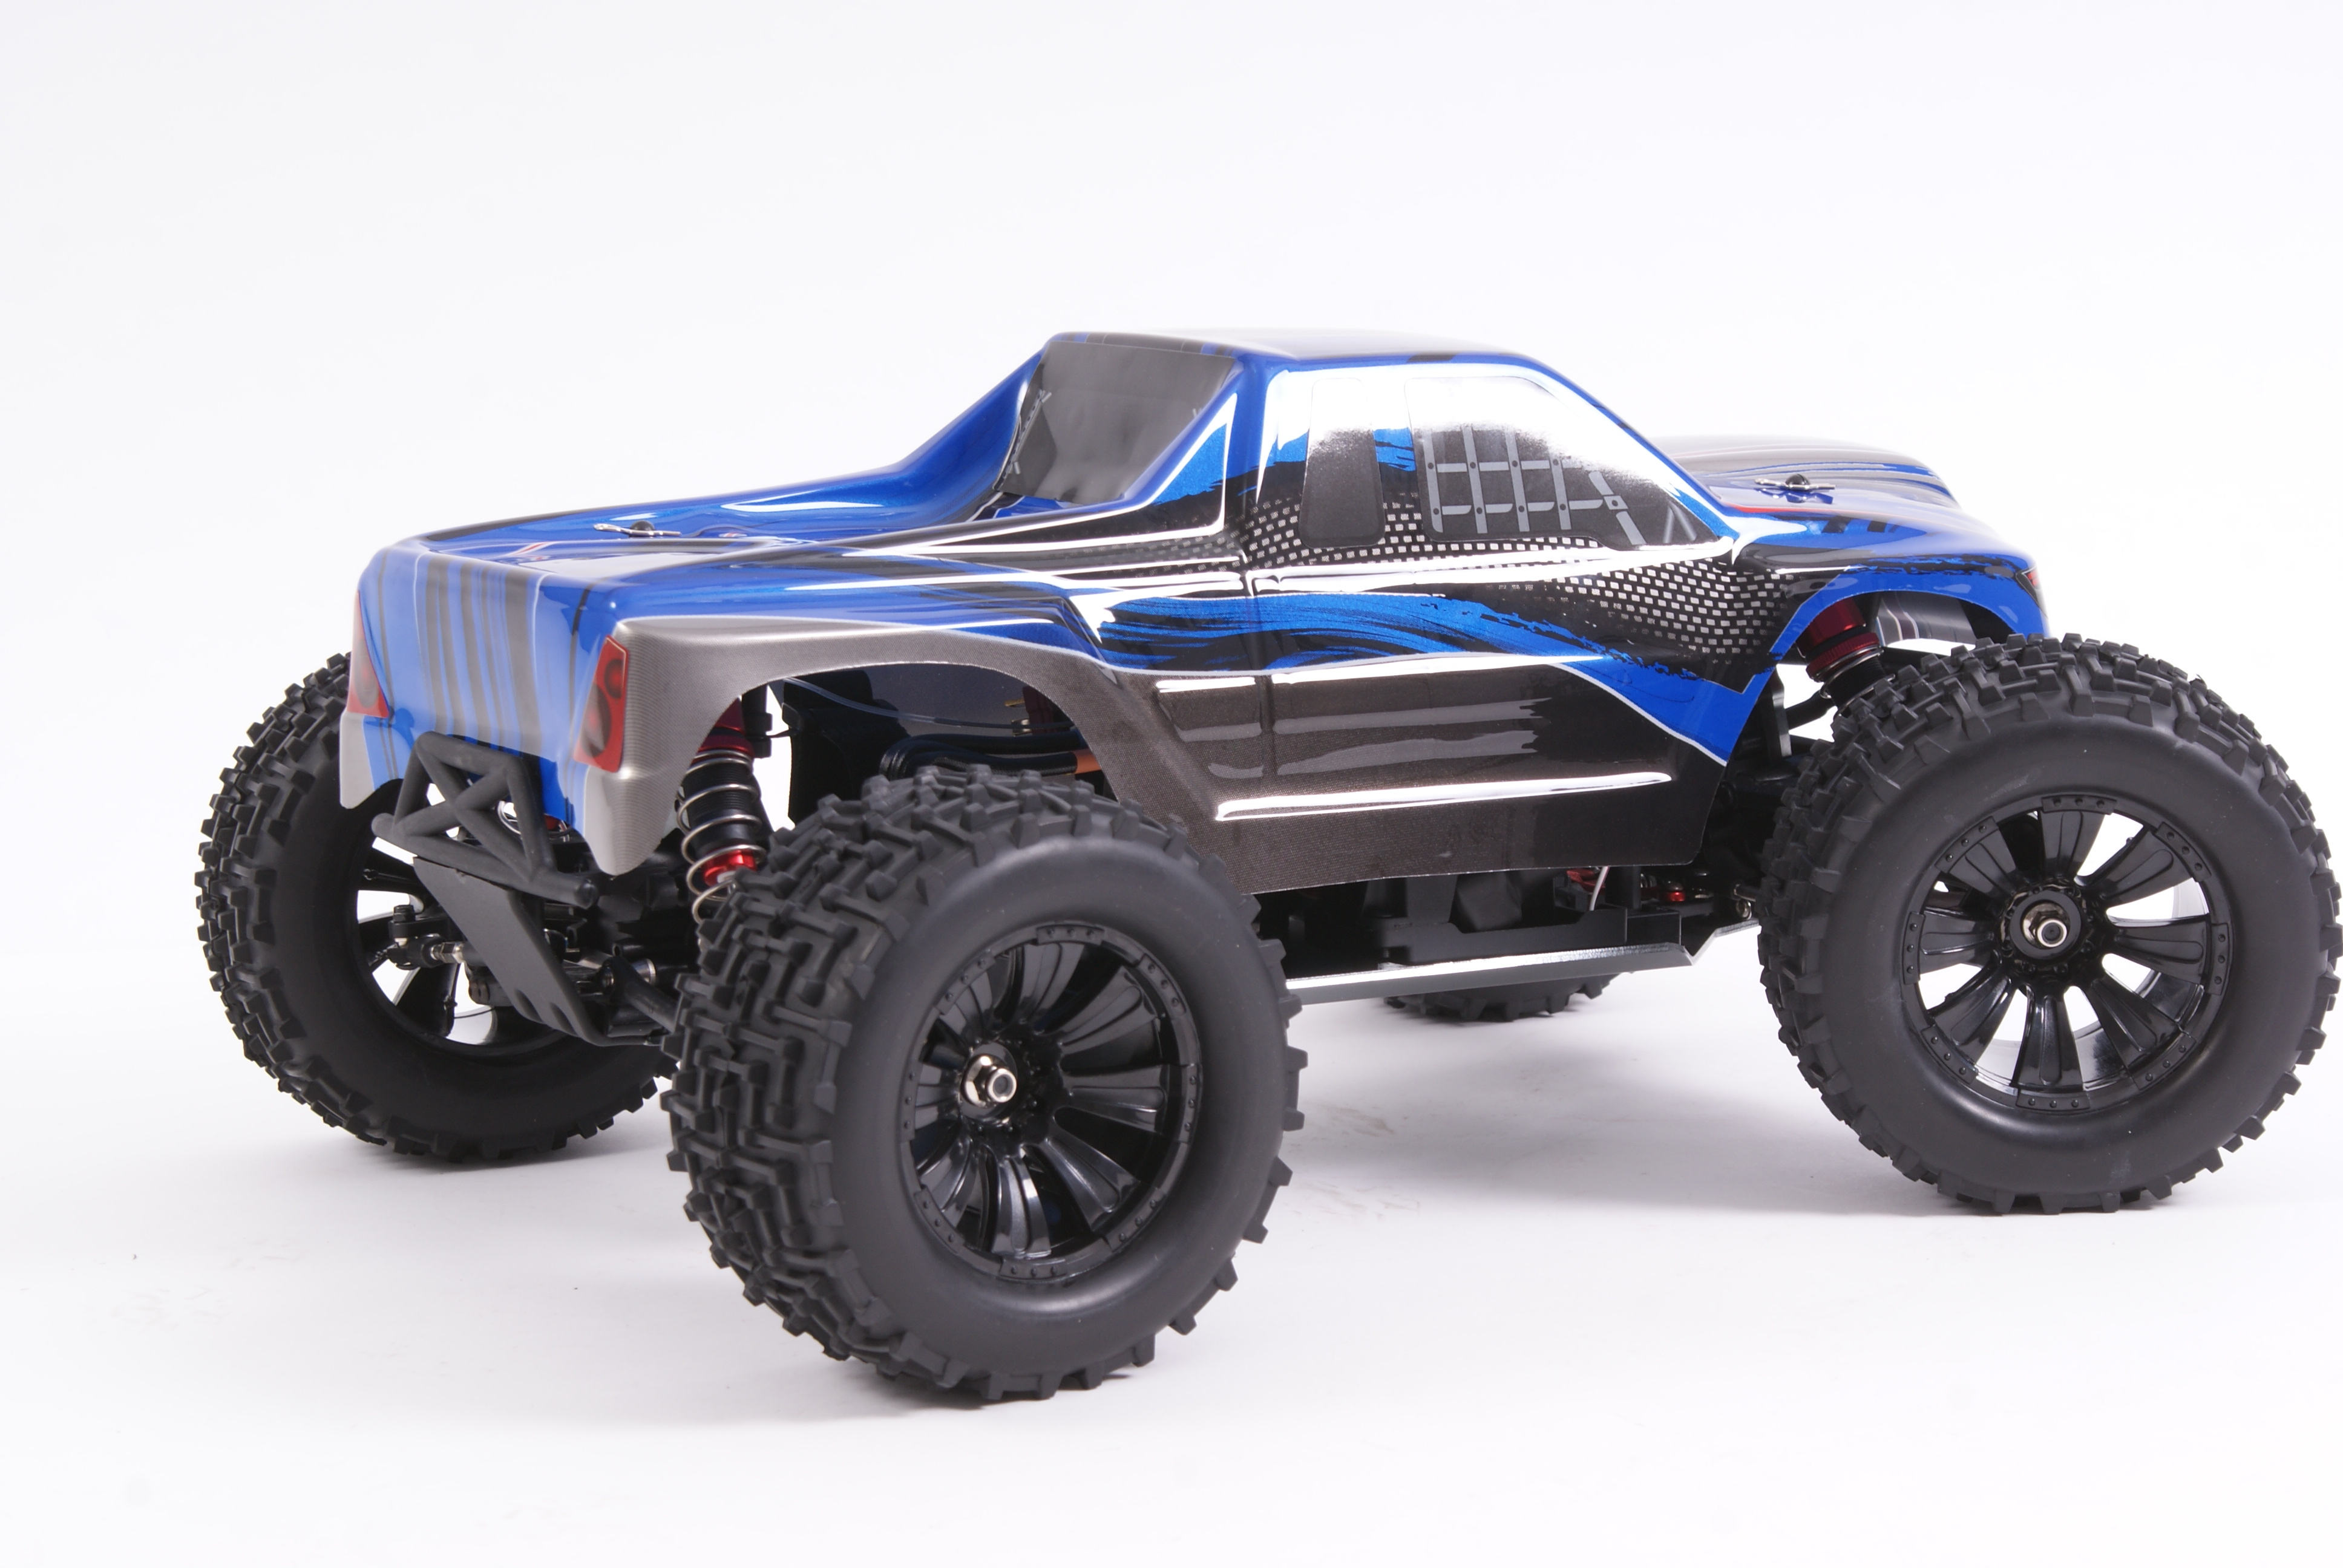 SST RACING - EXPEDITION 4WD MONSTER TRUCK 1/10 BLUE RTR